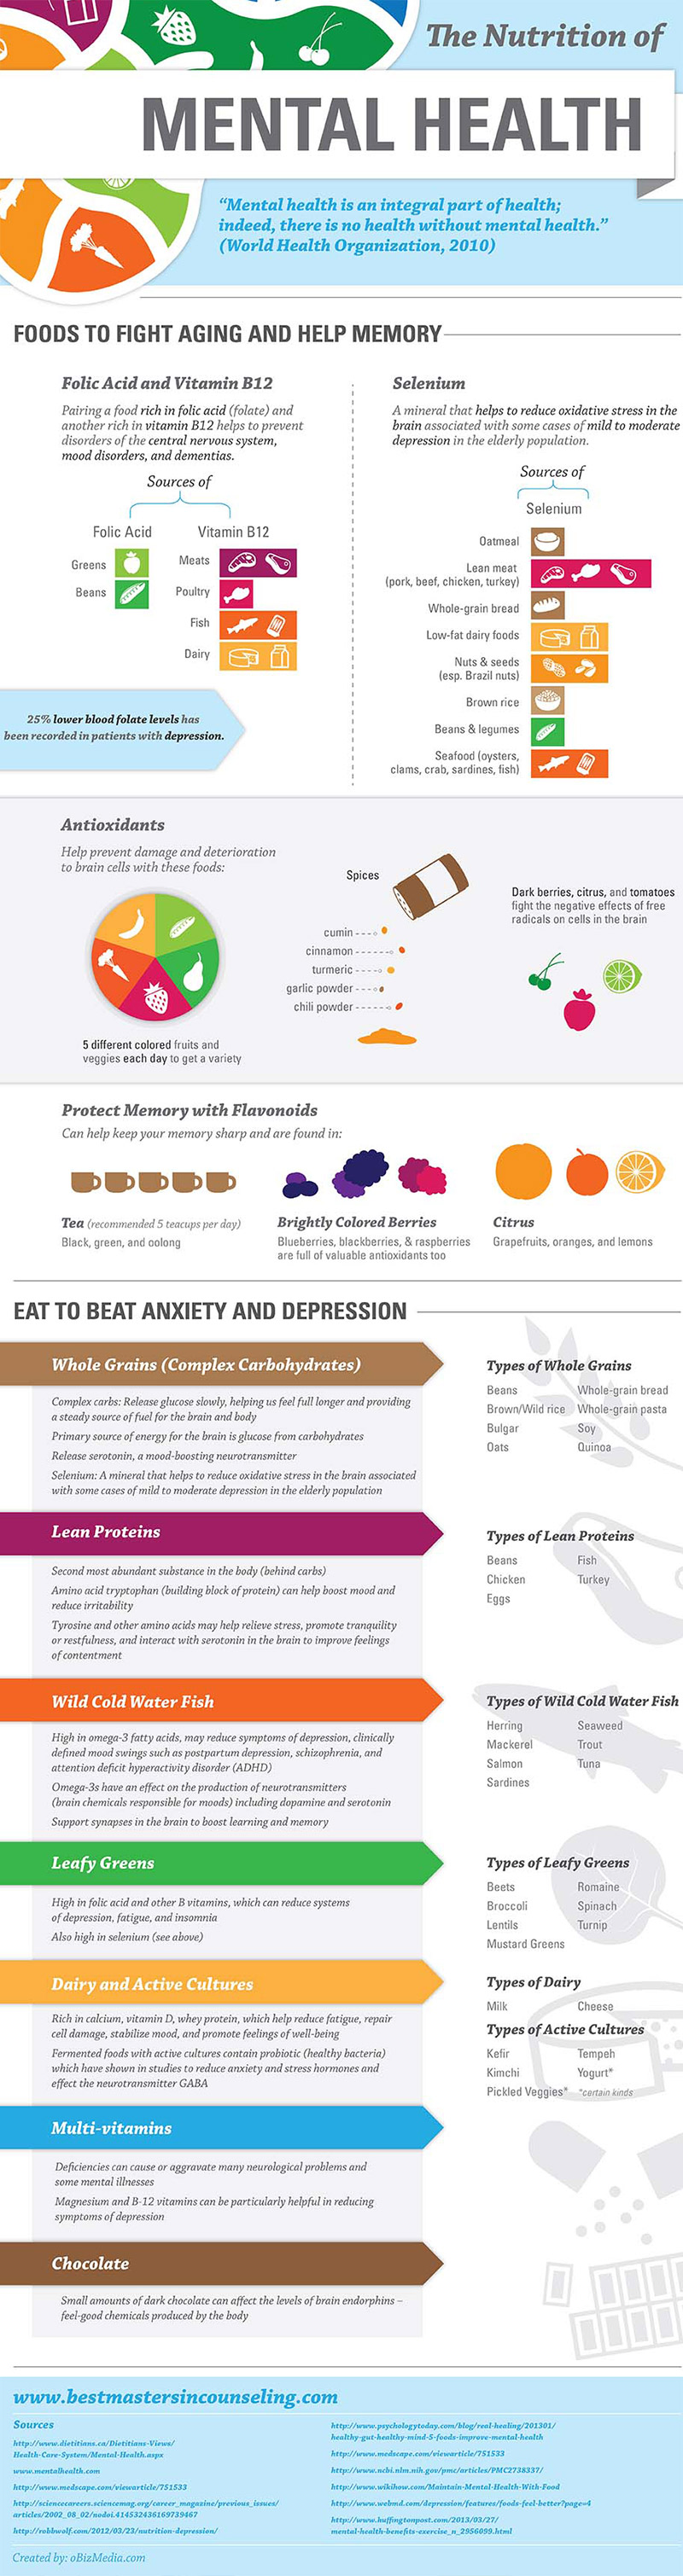 anxiety-depression-foods-2